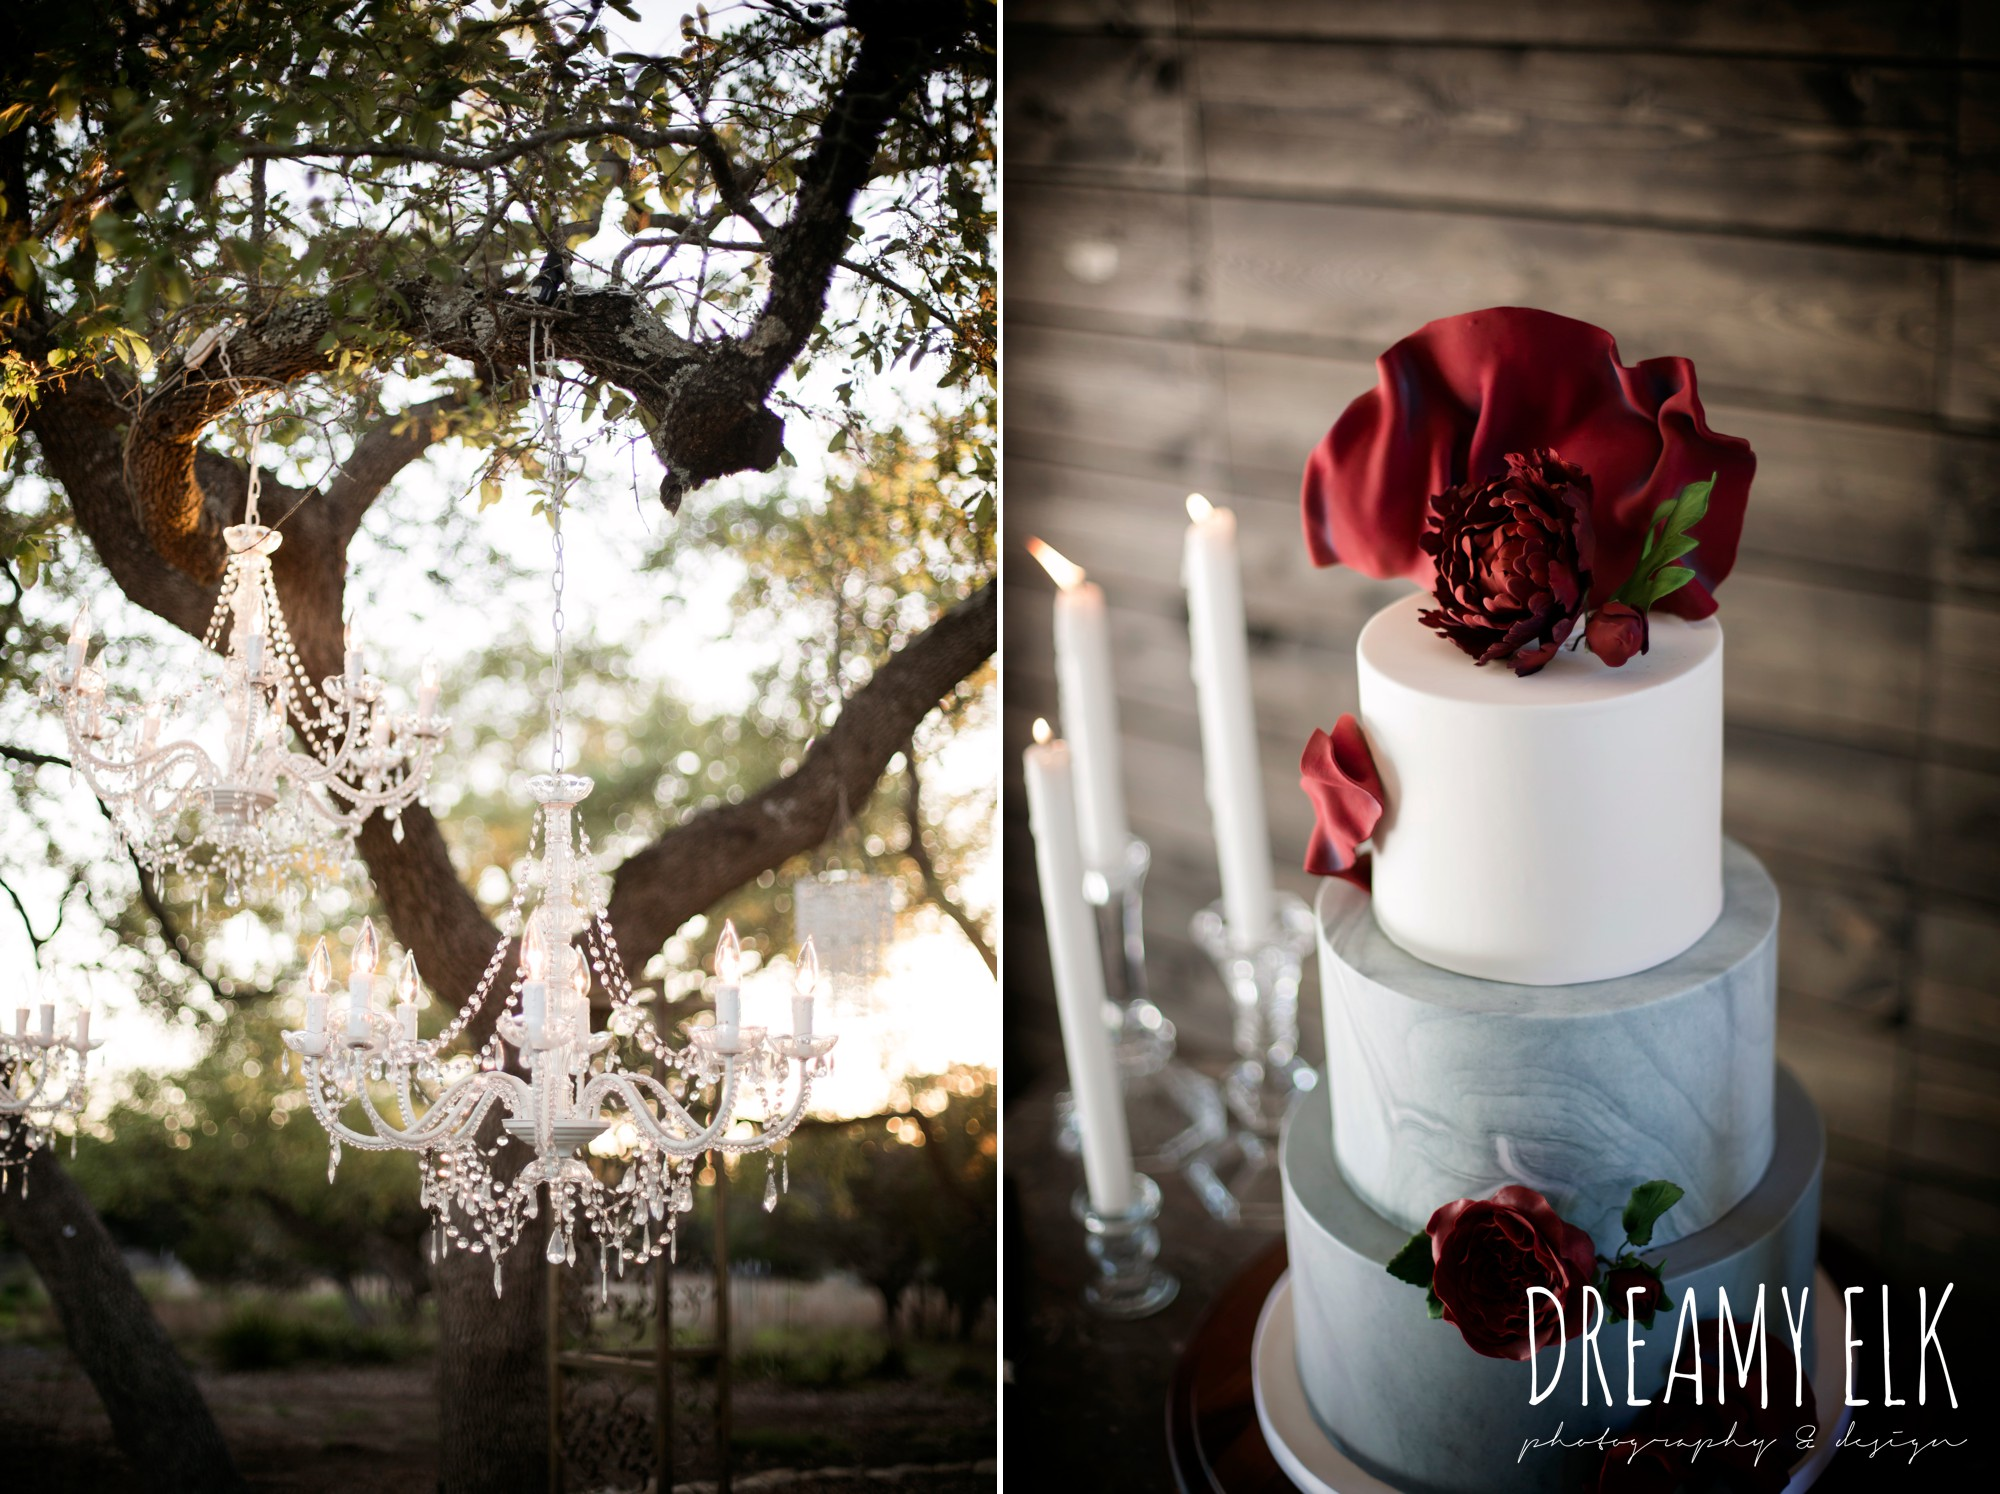 the cedars ranch, libby cole creations, iced cakes and confections, intelligent lighting design, moody rich delicate marfa inspired burgundy maroon black white spring styled wedding photo shoot {dreamy elk photography and design}